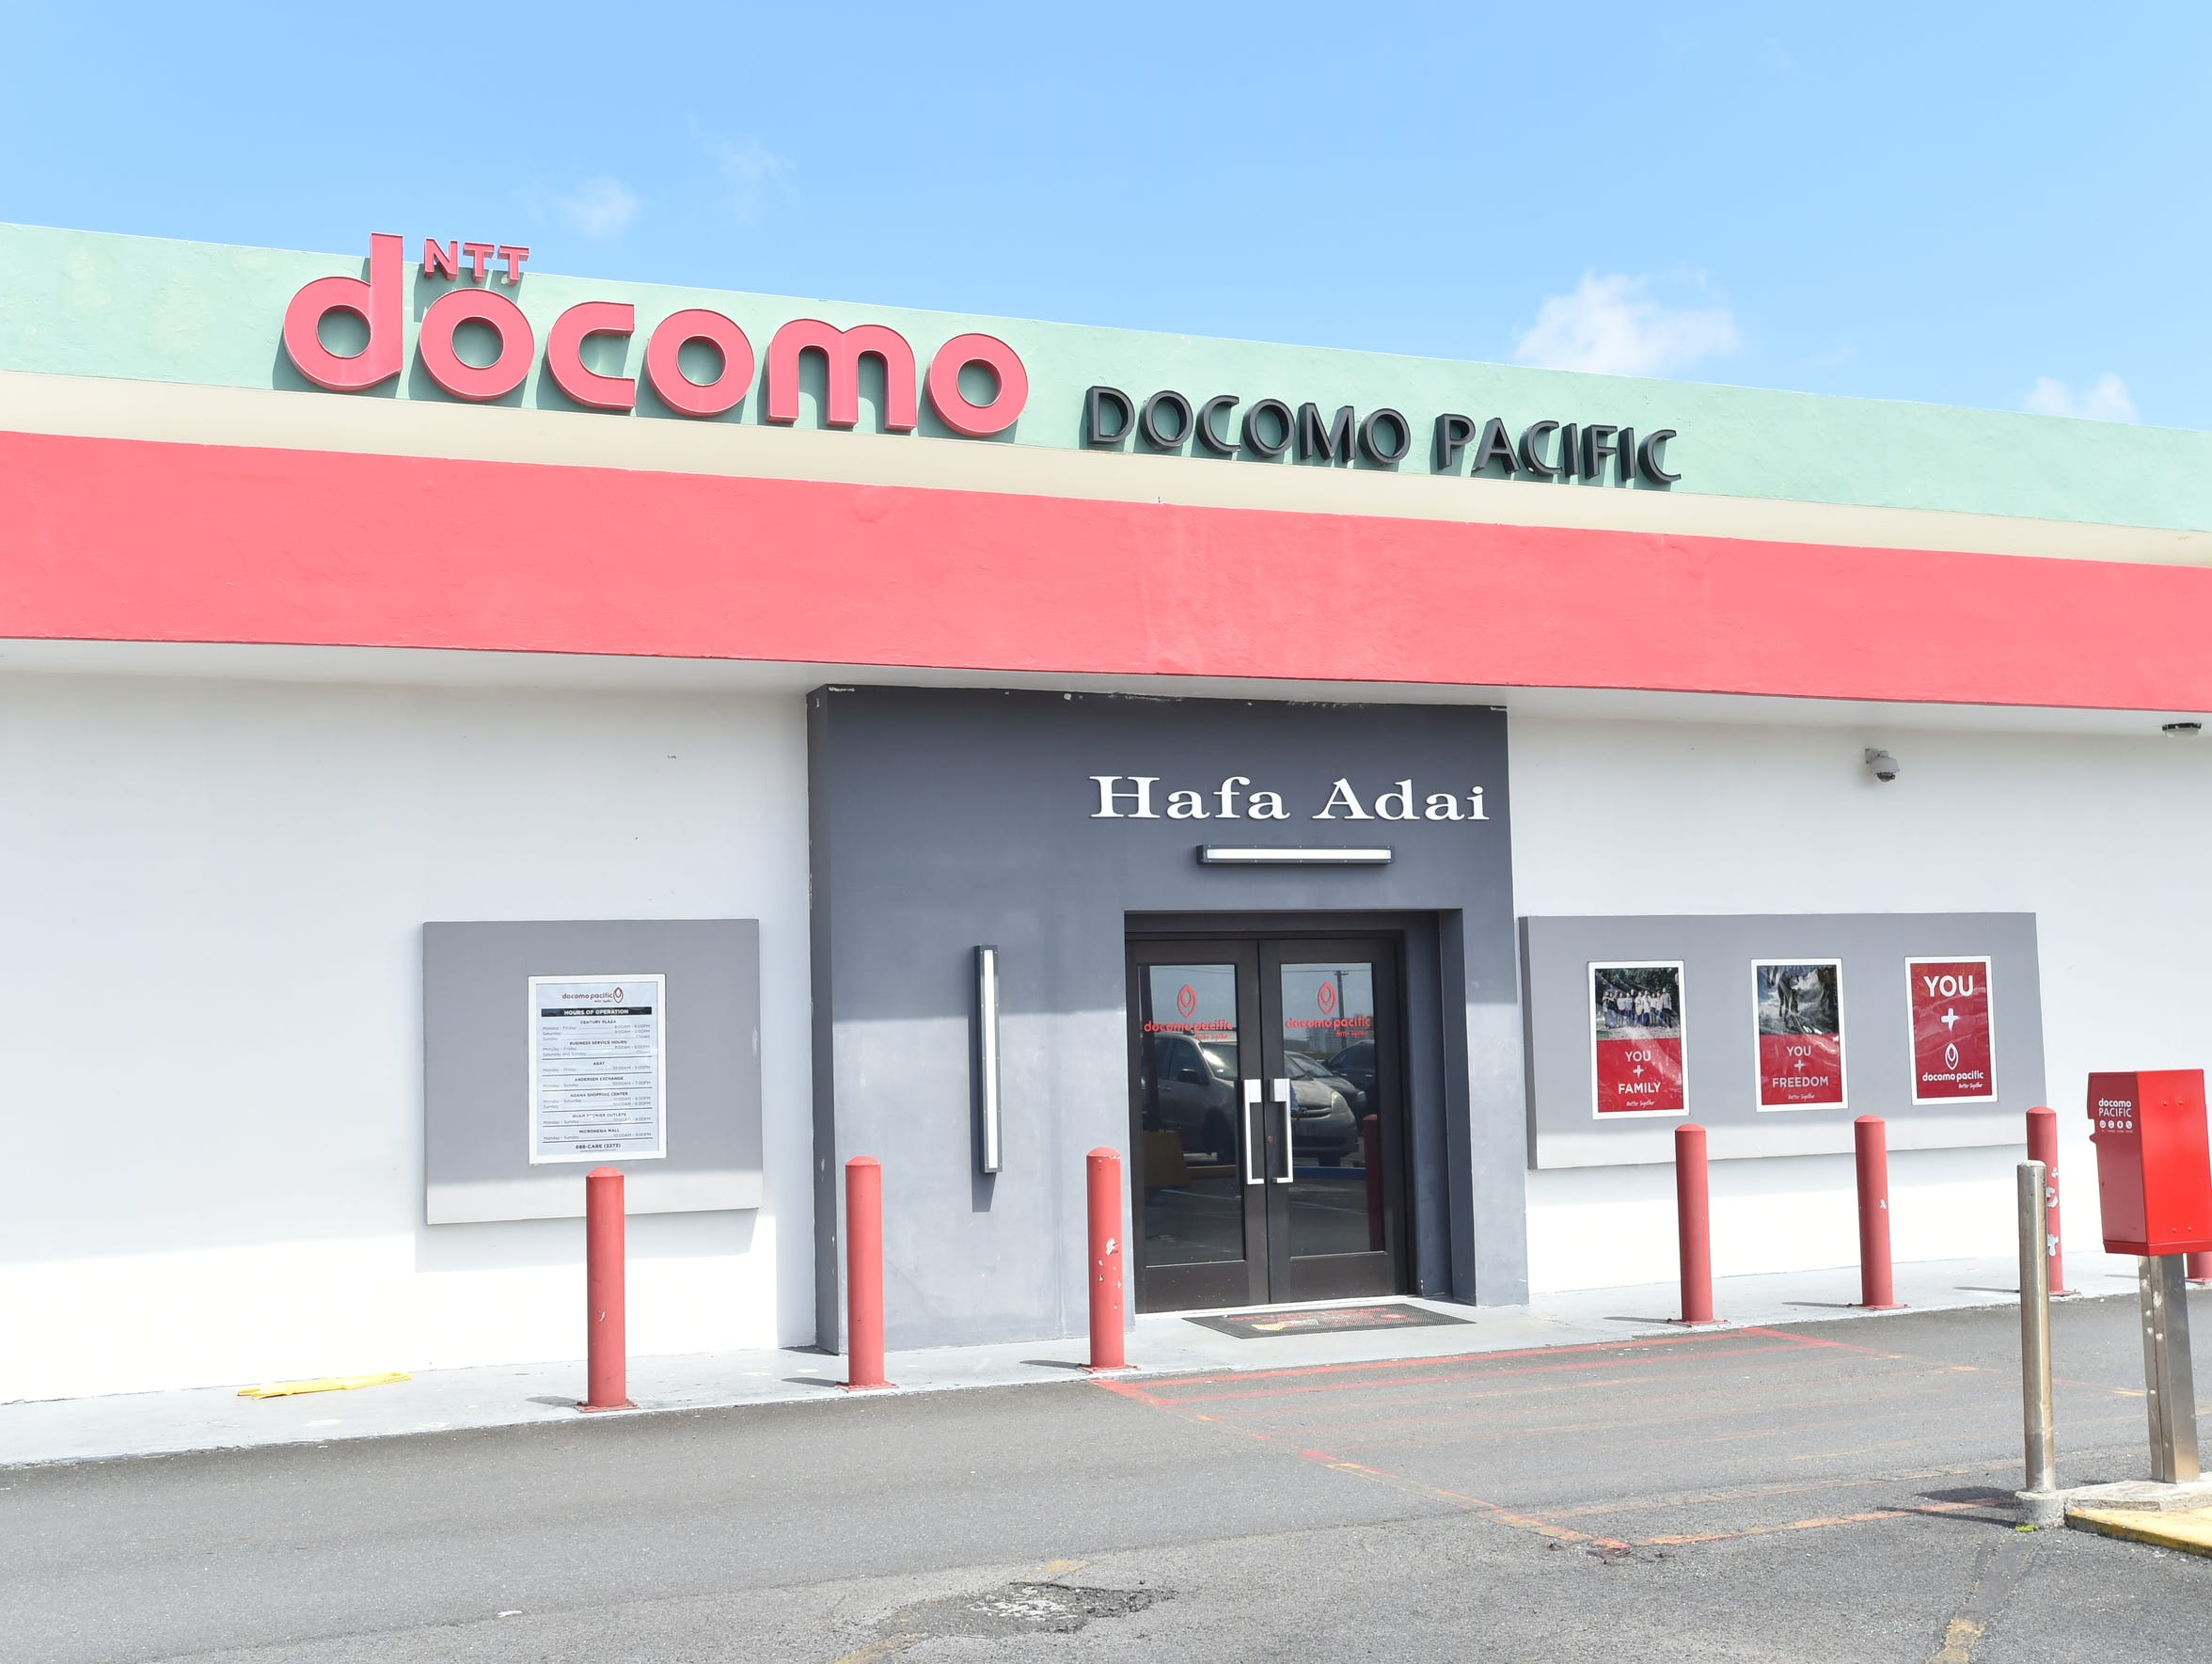 This file photo shows the front of the Docomo Pacific